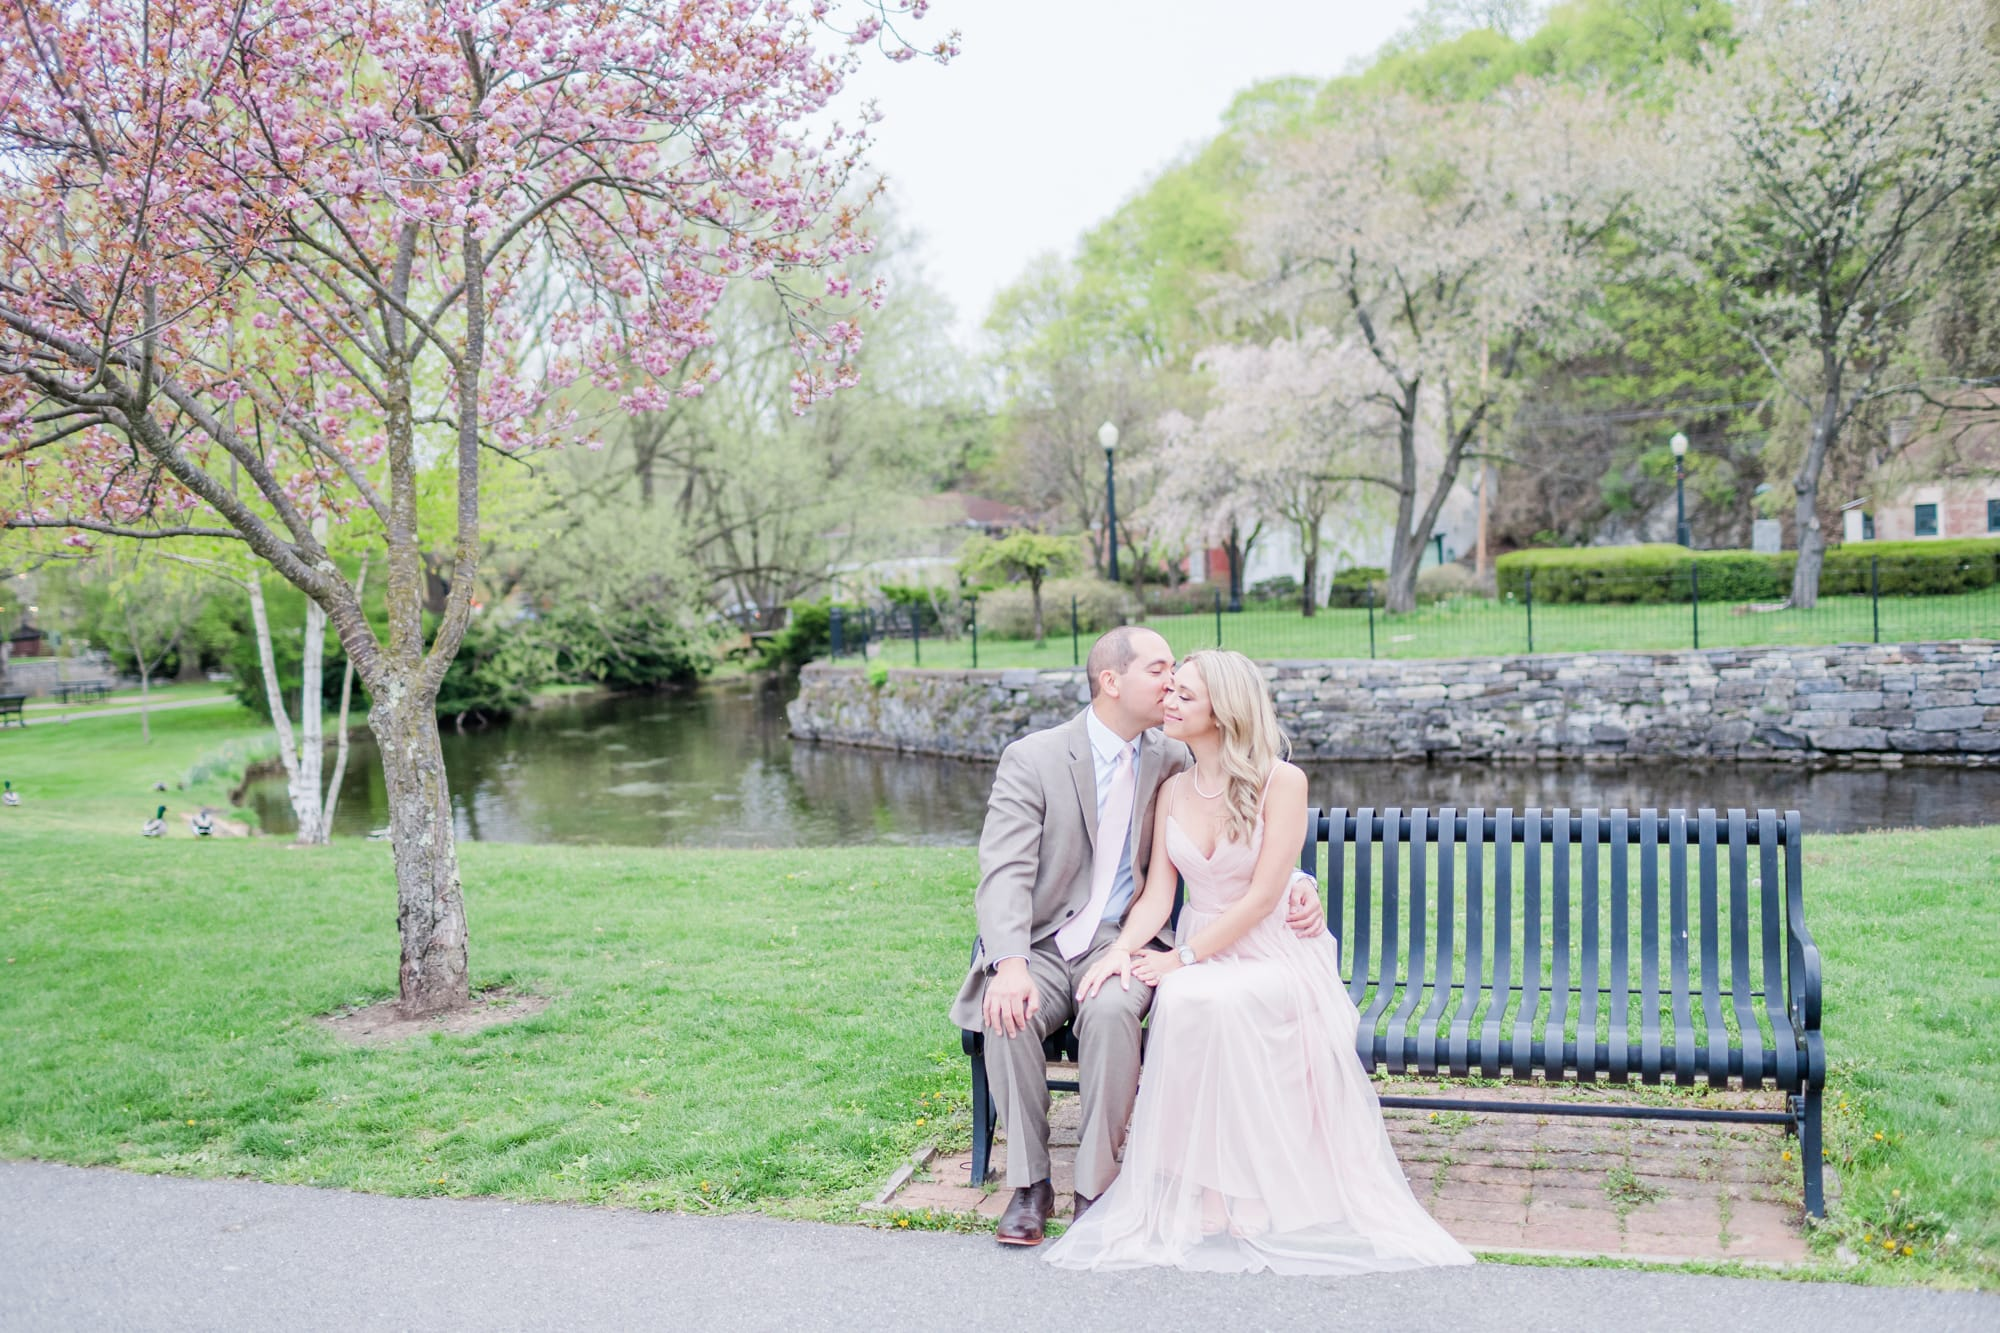 Engagement photos at Talleyrand Park with cherry blossoms